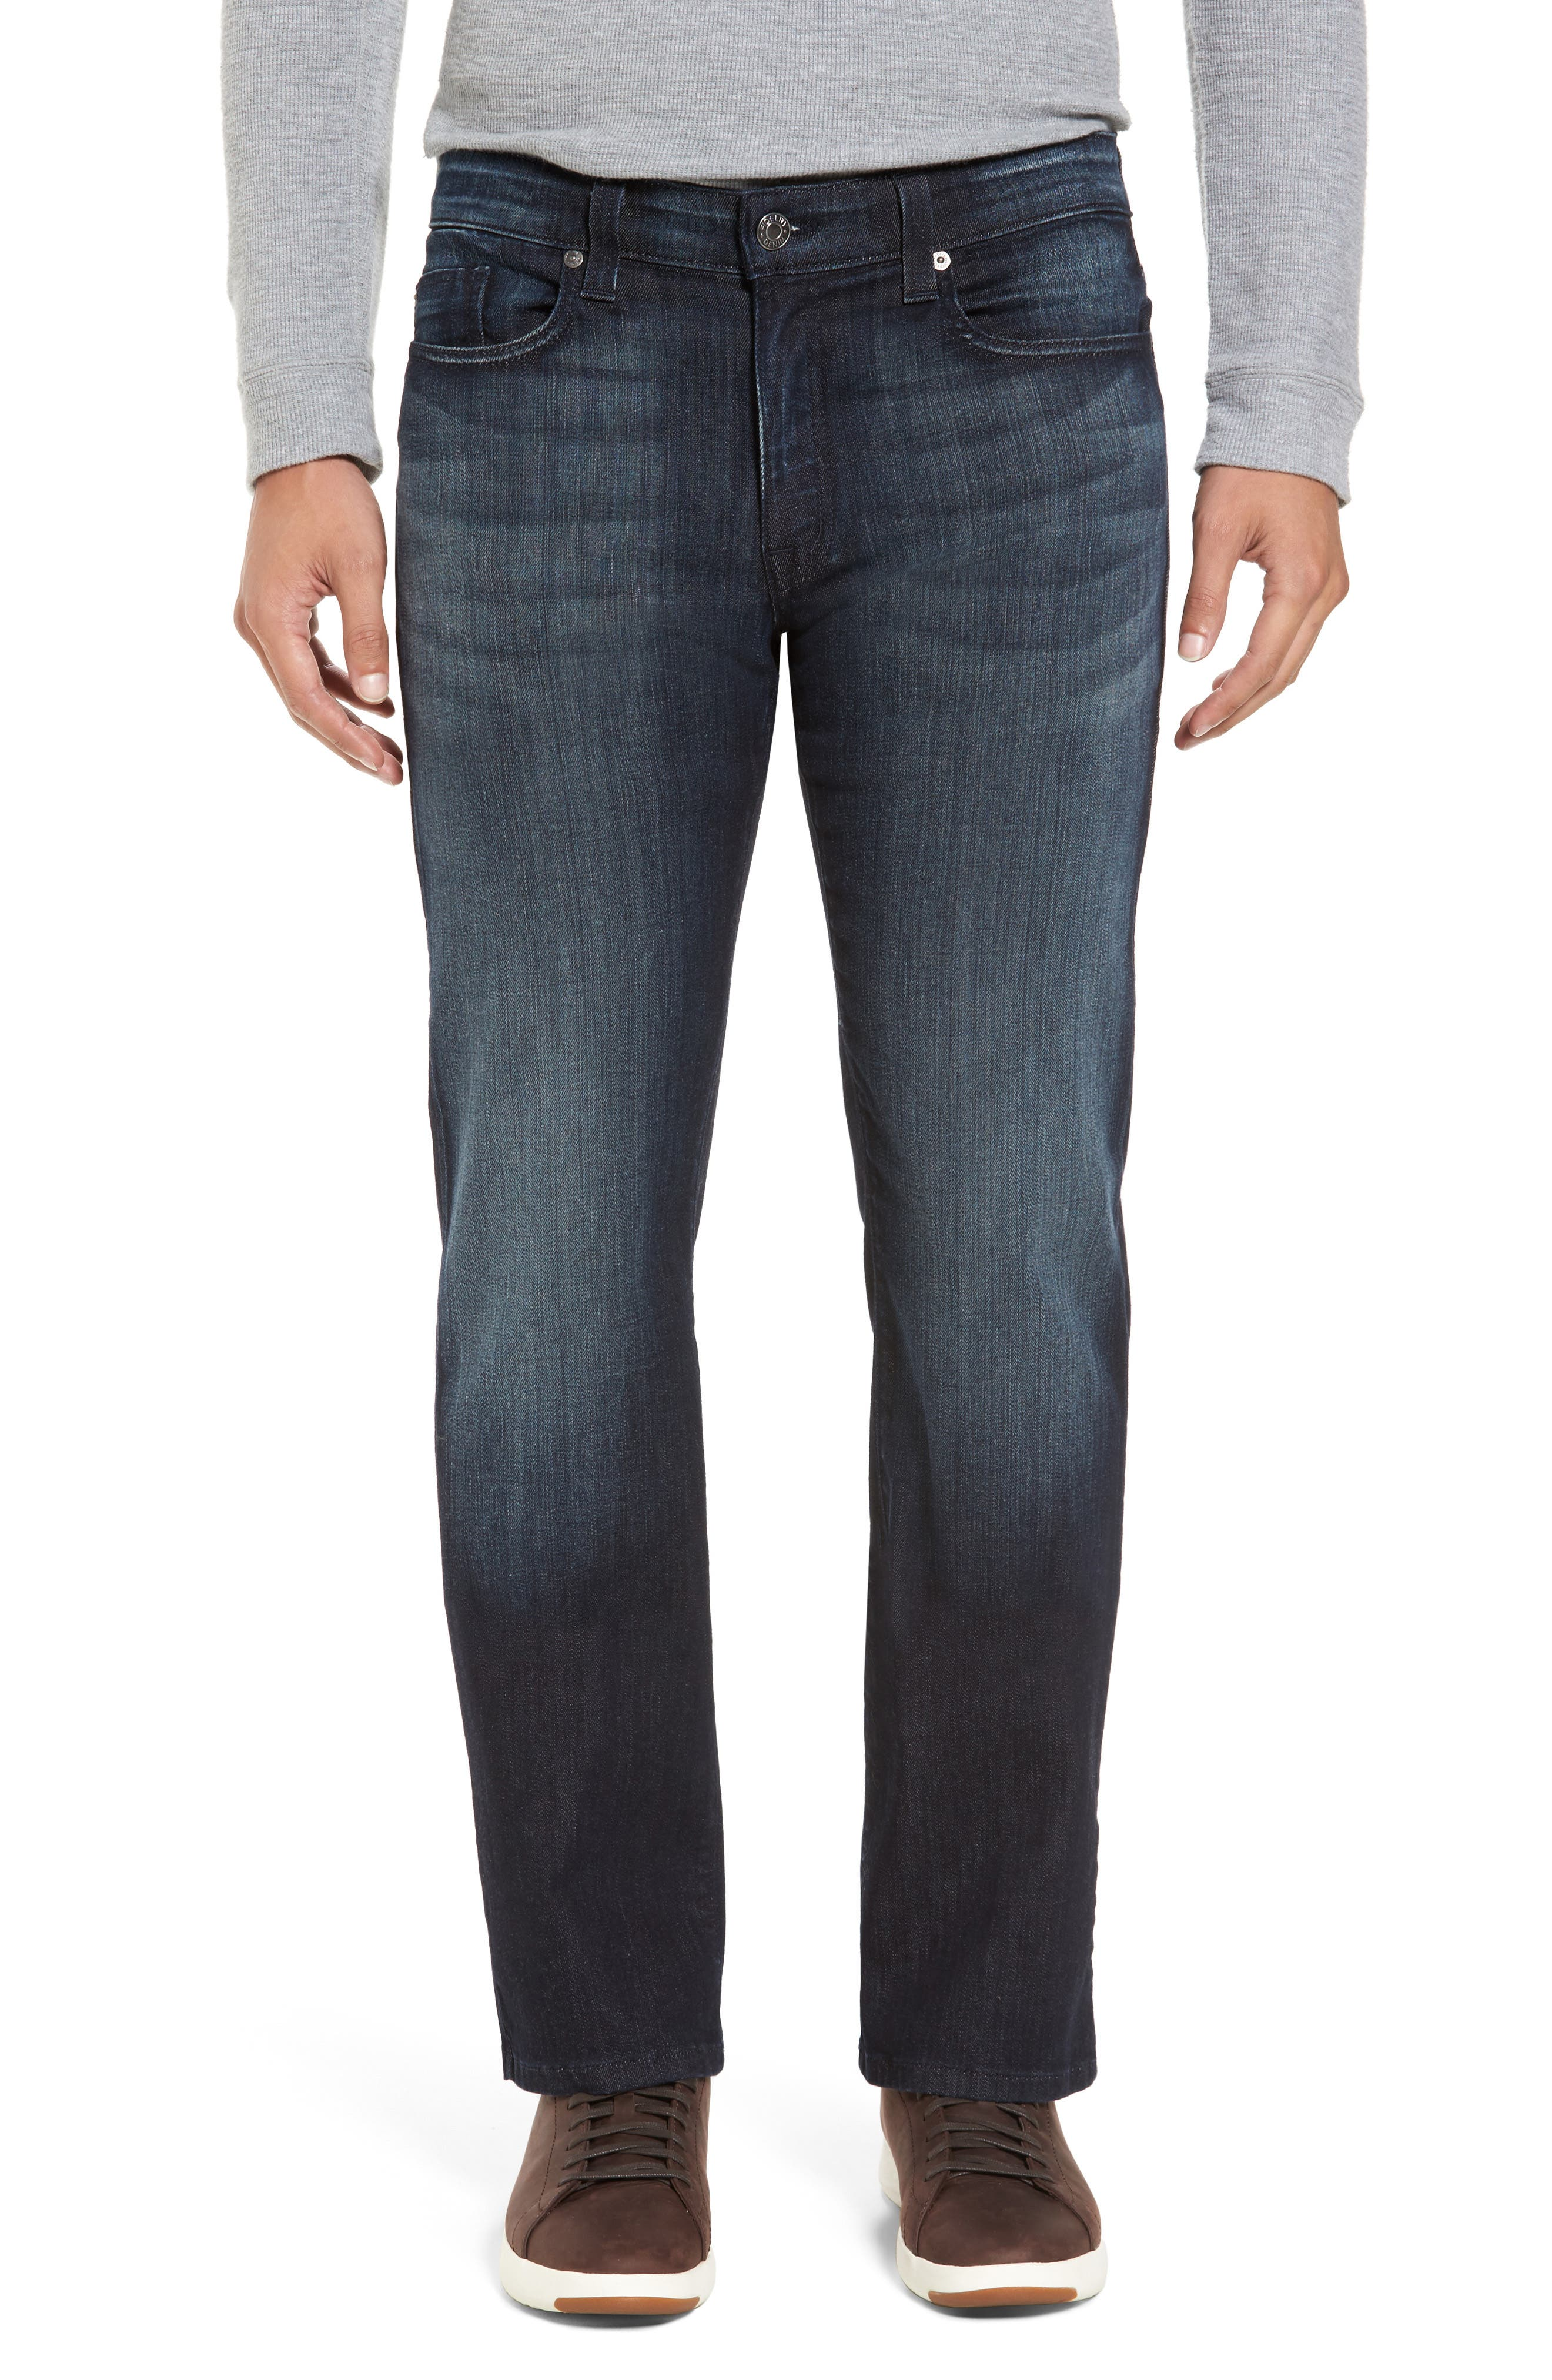 5011 Relaxed Fit Jeans,                         Main,                         color, Brooklyn Blue